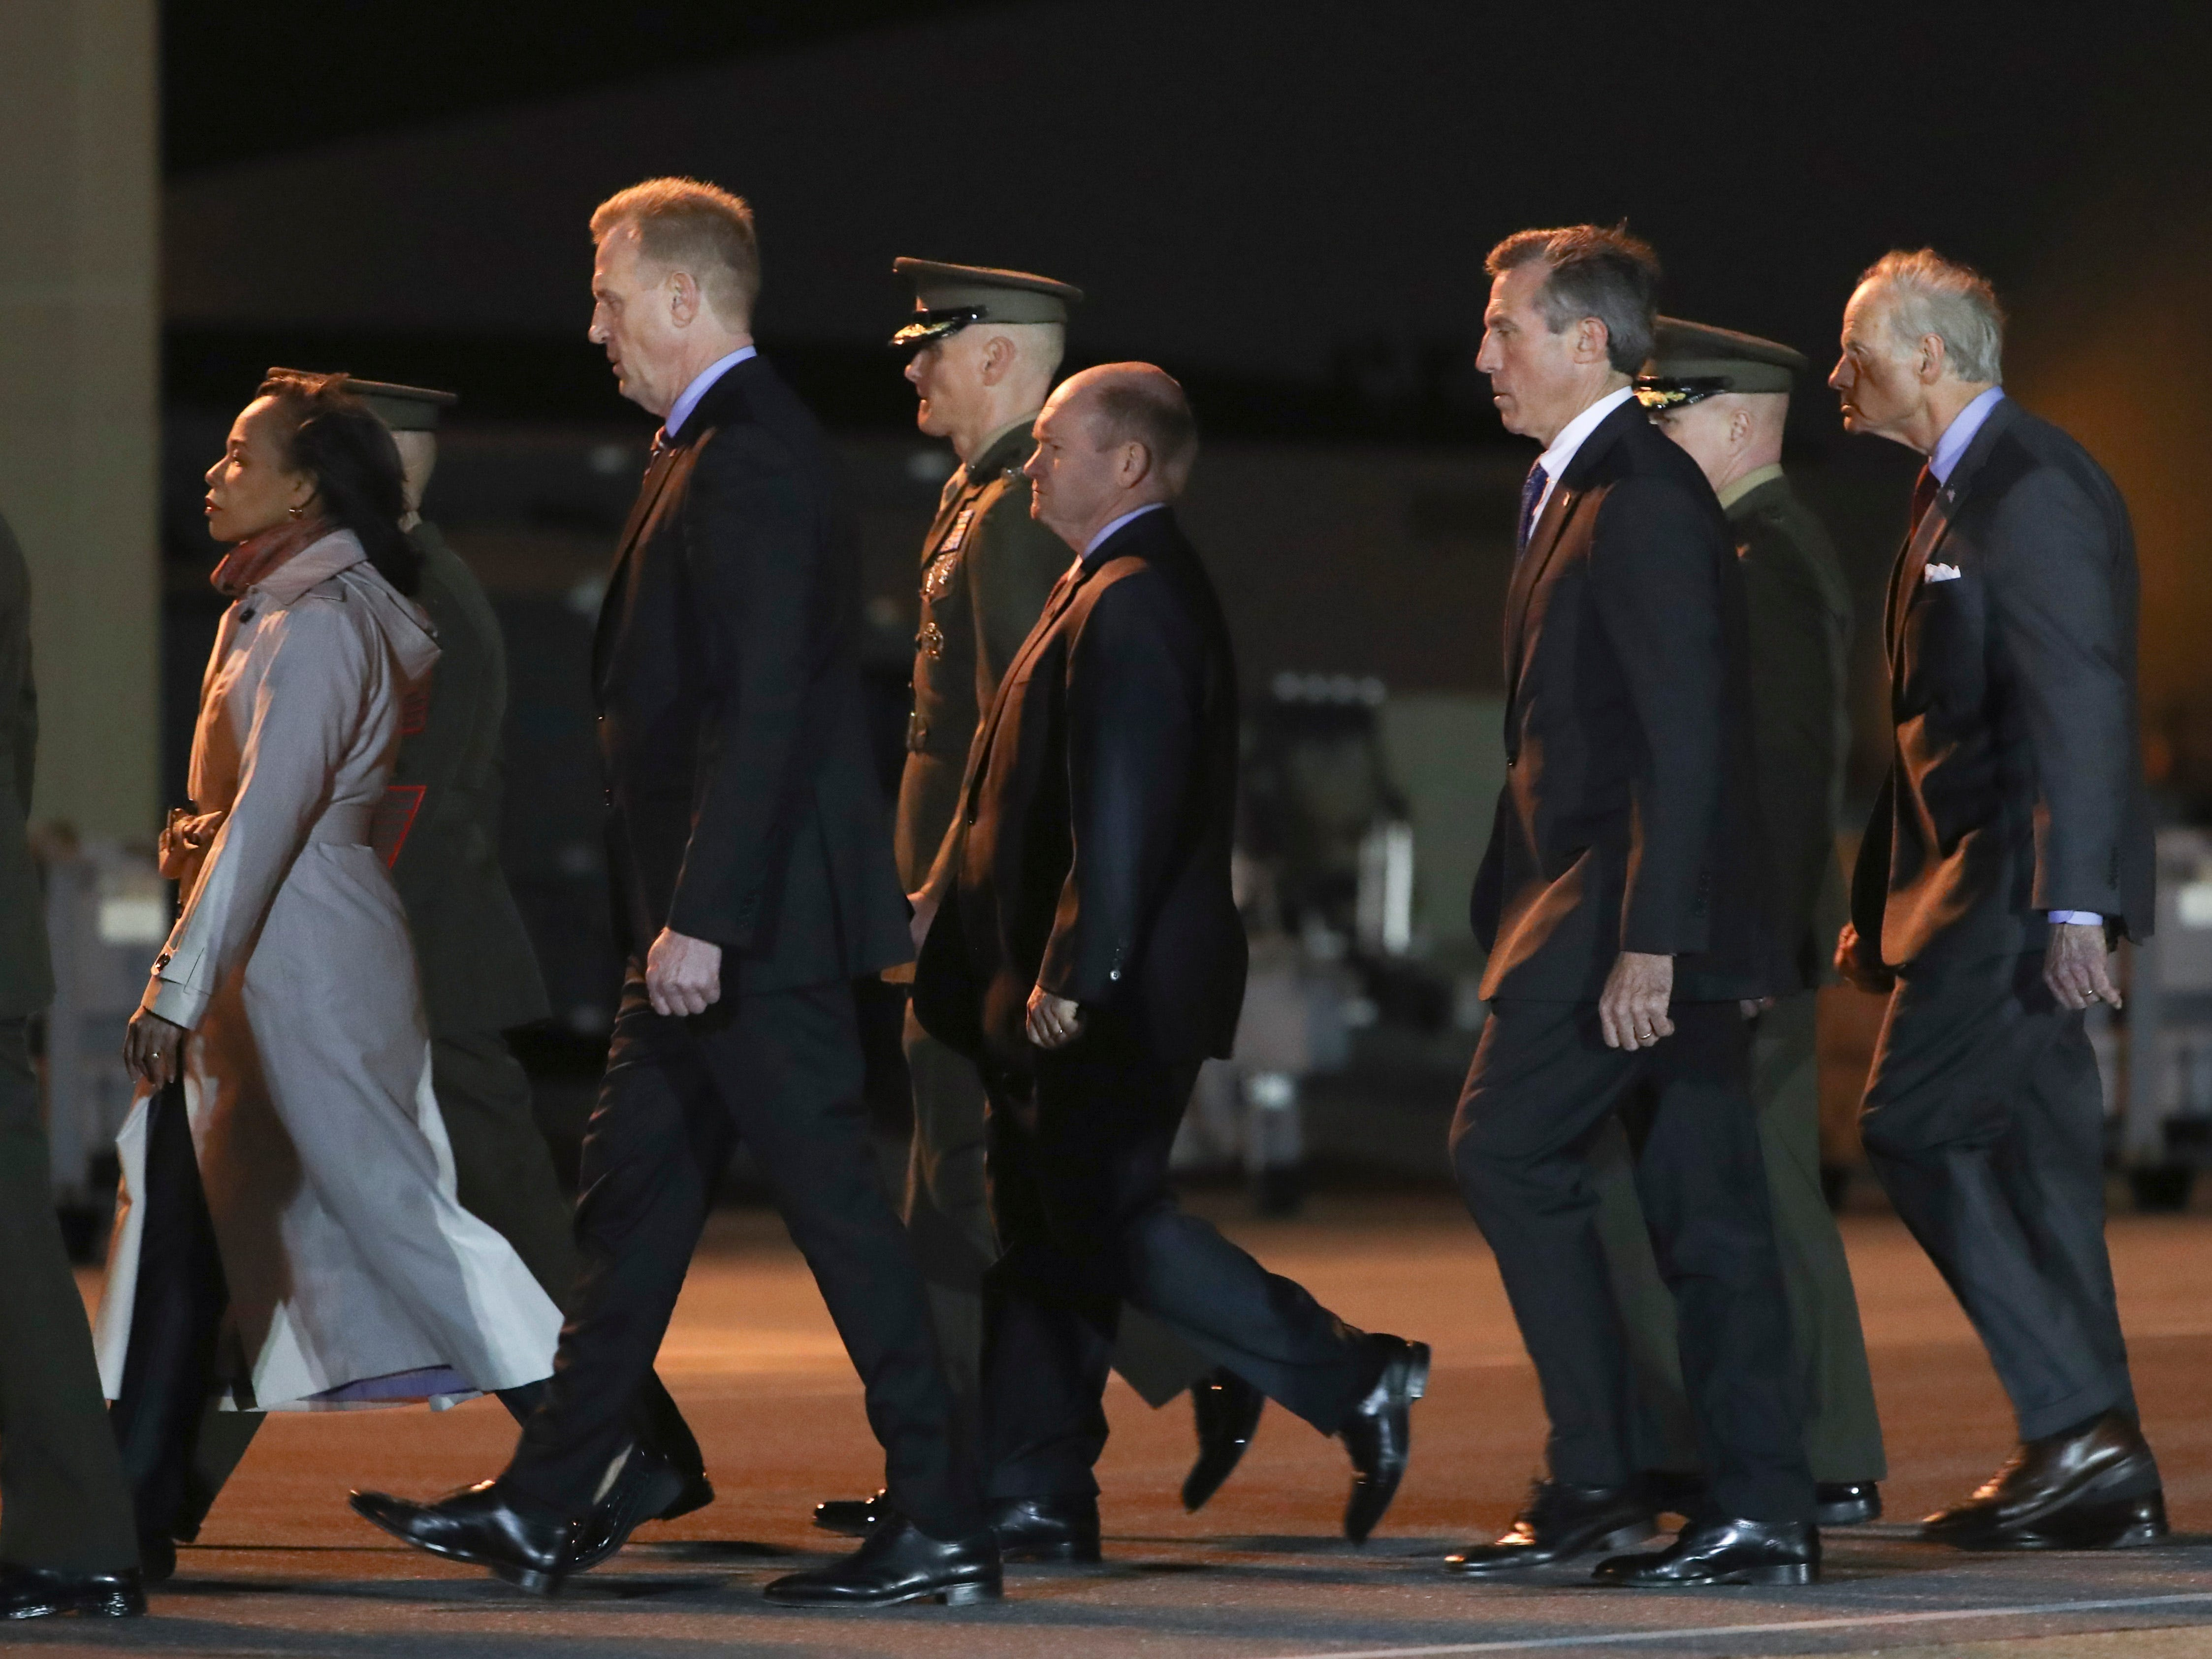 Delaware elected officials and military officials including (from left) Rep. Lisa Blunt Rochester, Acting Secretary of Defense Patrick Shanahan, Senator Chris Coons, Gov. John Carney and Sen. Tom Carper leave the tarmac after the remains of Marine Staff Sgt. Christopher A. Slutman were transferred from a plane to the mortuary at Dover Air Force Base in a solemn process Thursday evening.